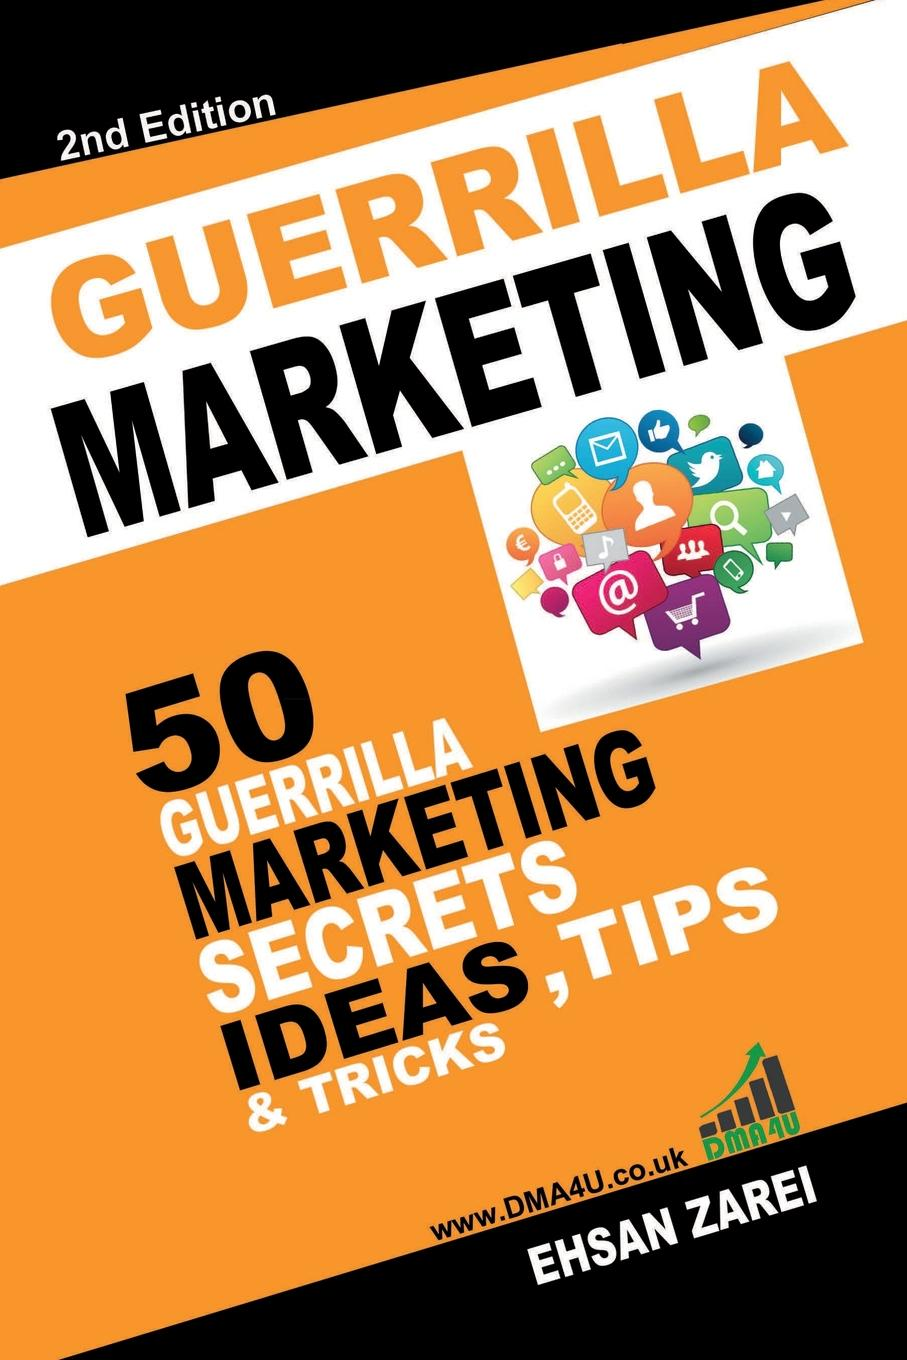 Guerilla Marketing Ideas Did You Waste A Lot Of Time& Money On Nonsense Marketing Р?...